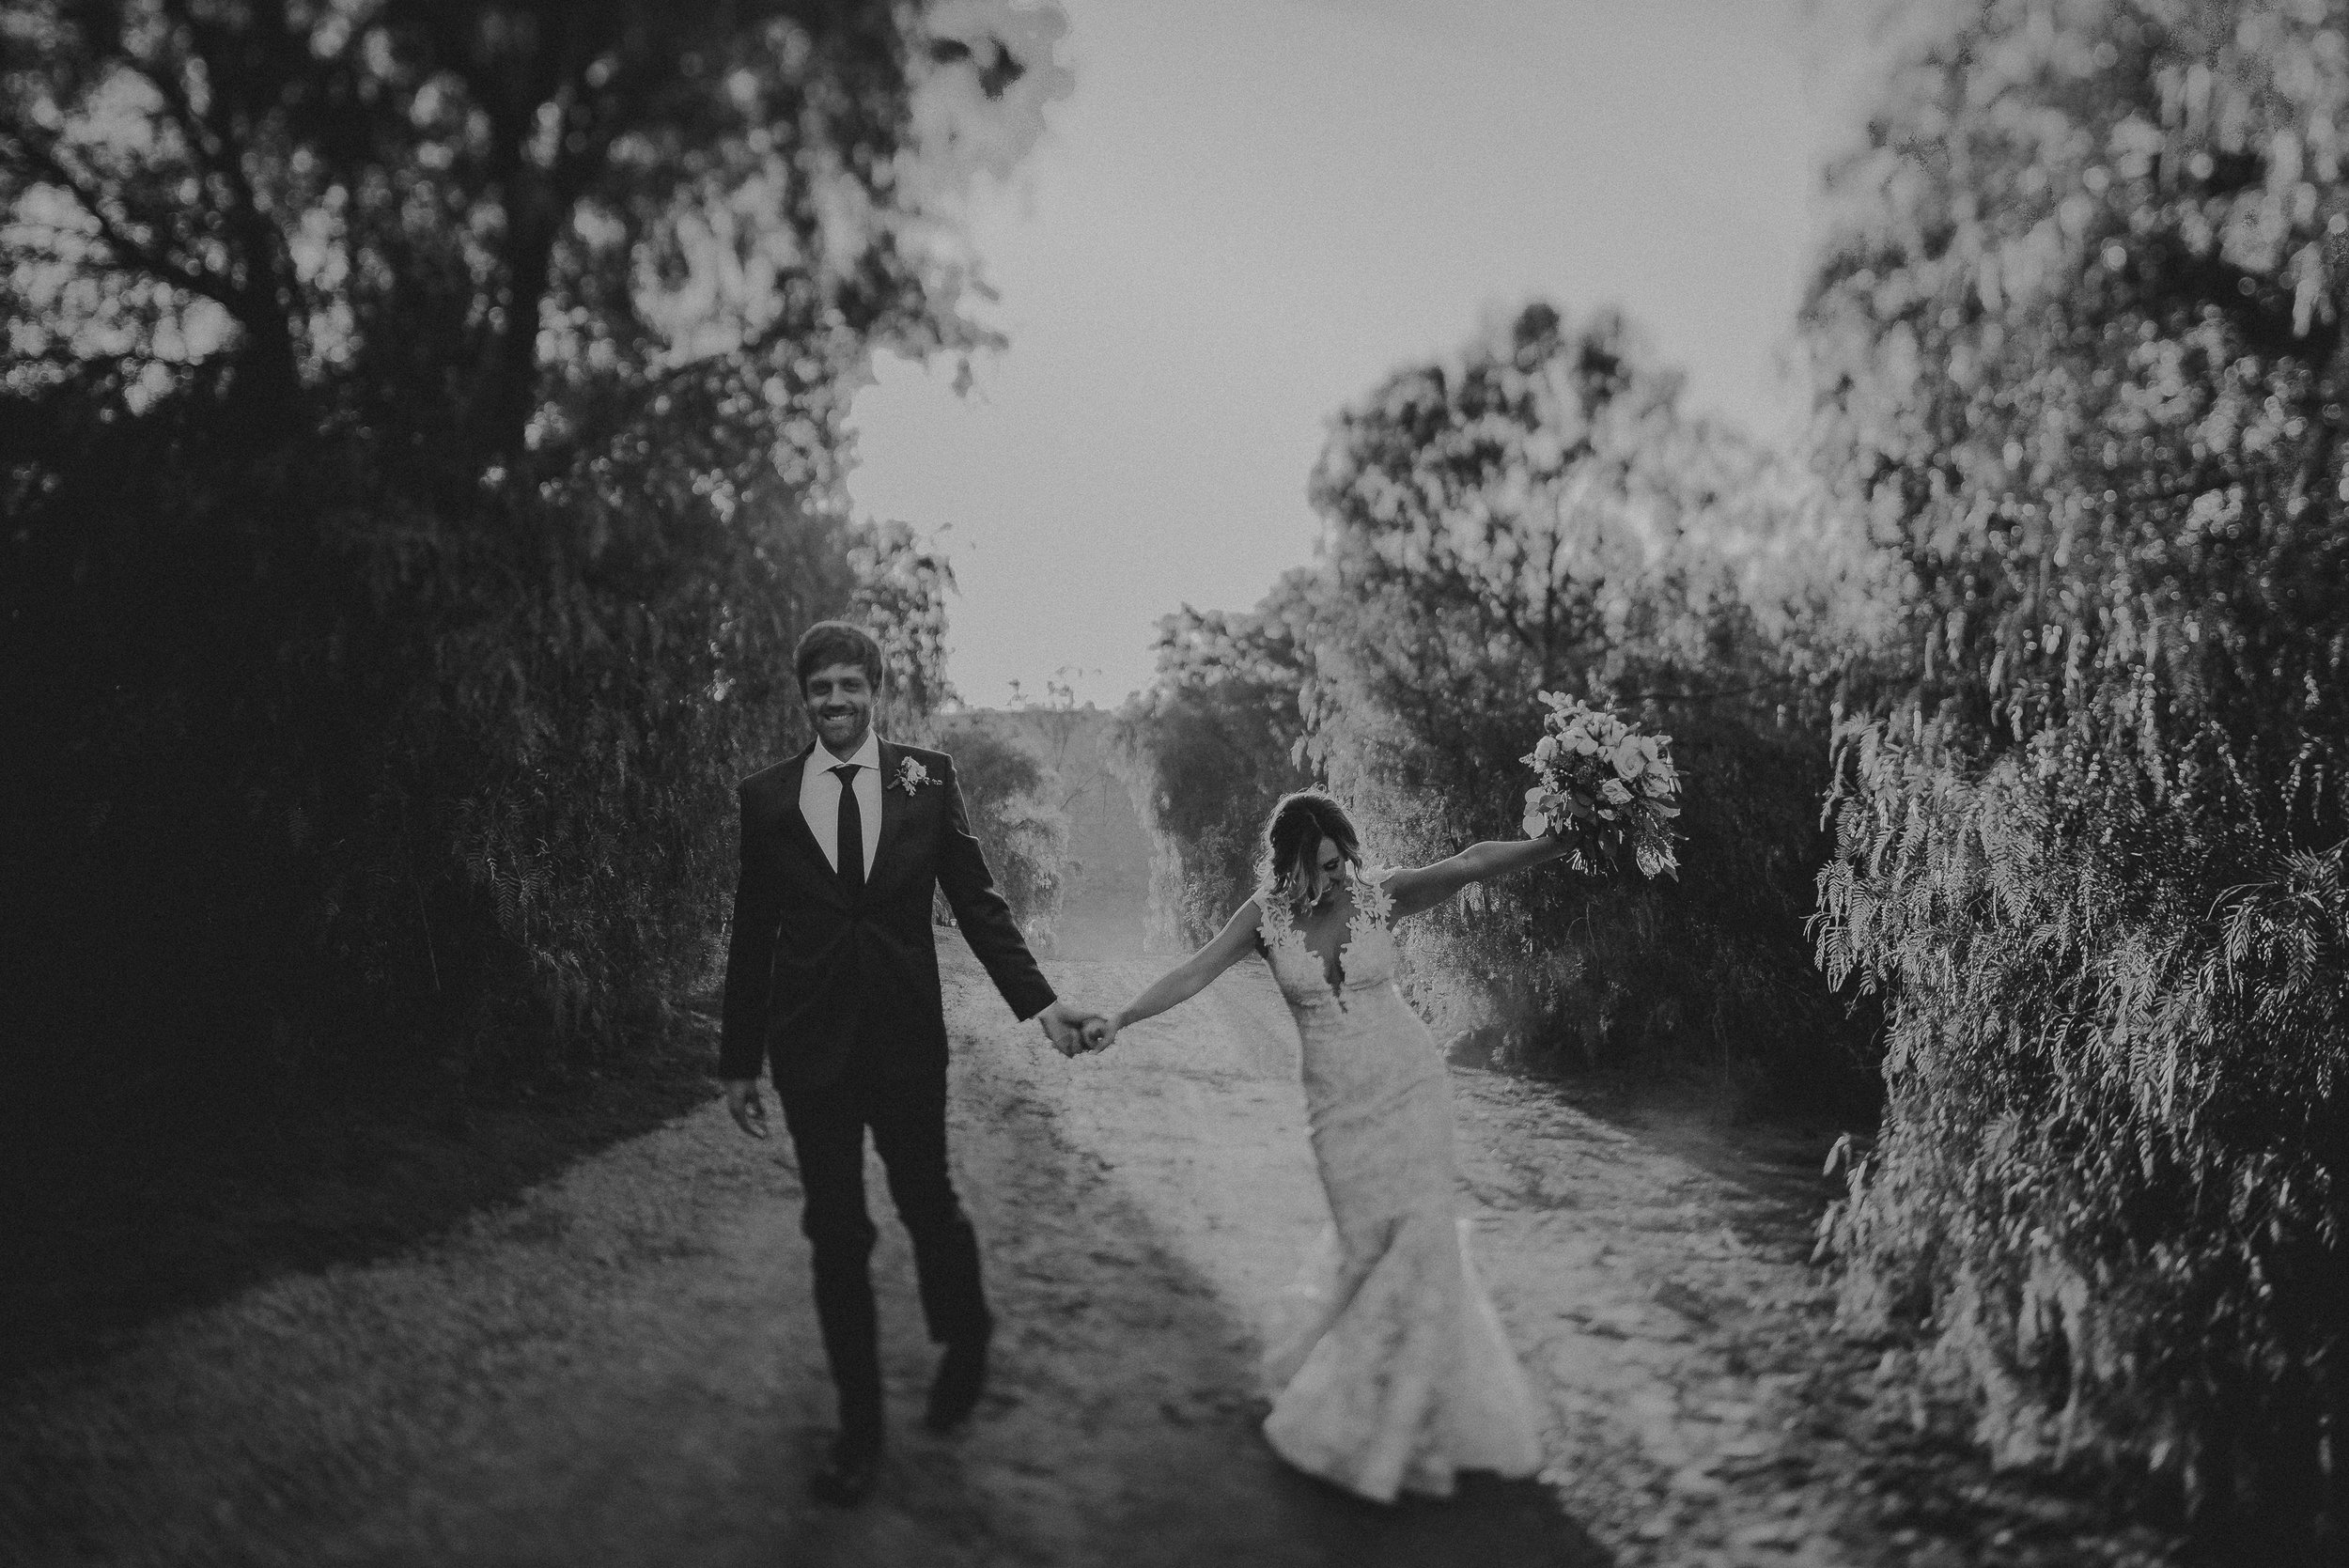 Isaiah + Taylor Photography - Los Angeles Wedding Photographer - Open Air Resort Wedding-95.jpg